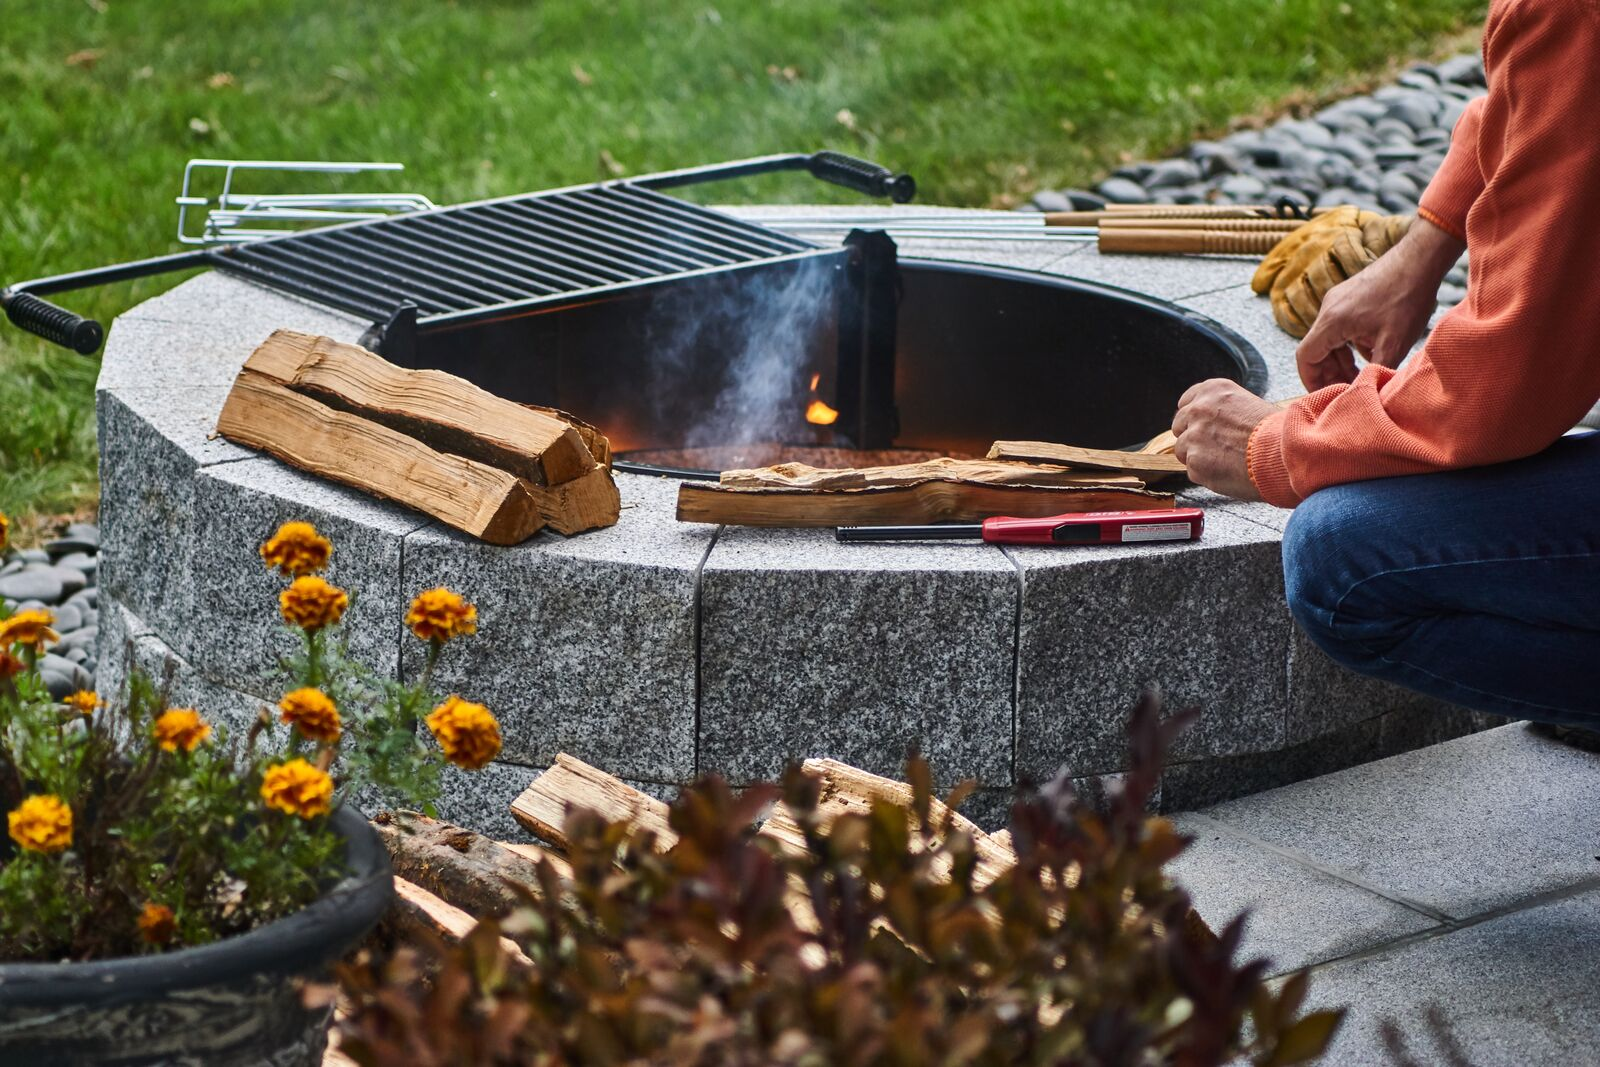 South Hadley Open House Diy Fire Pit Kit Giveaway